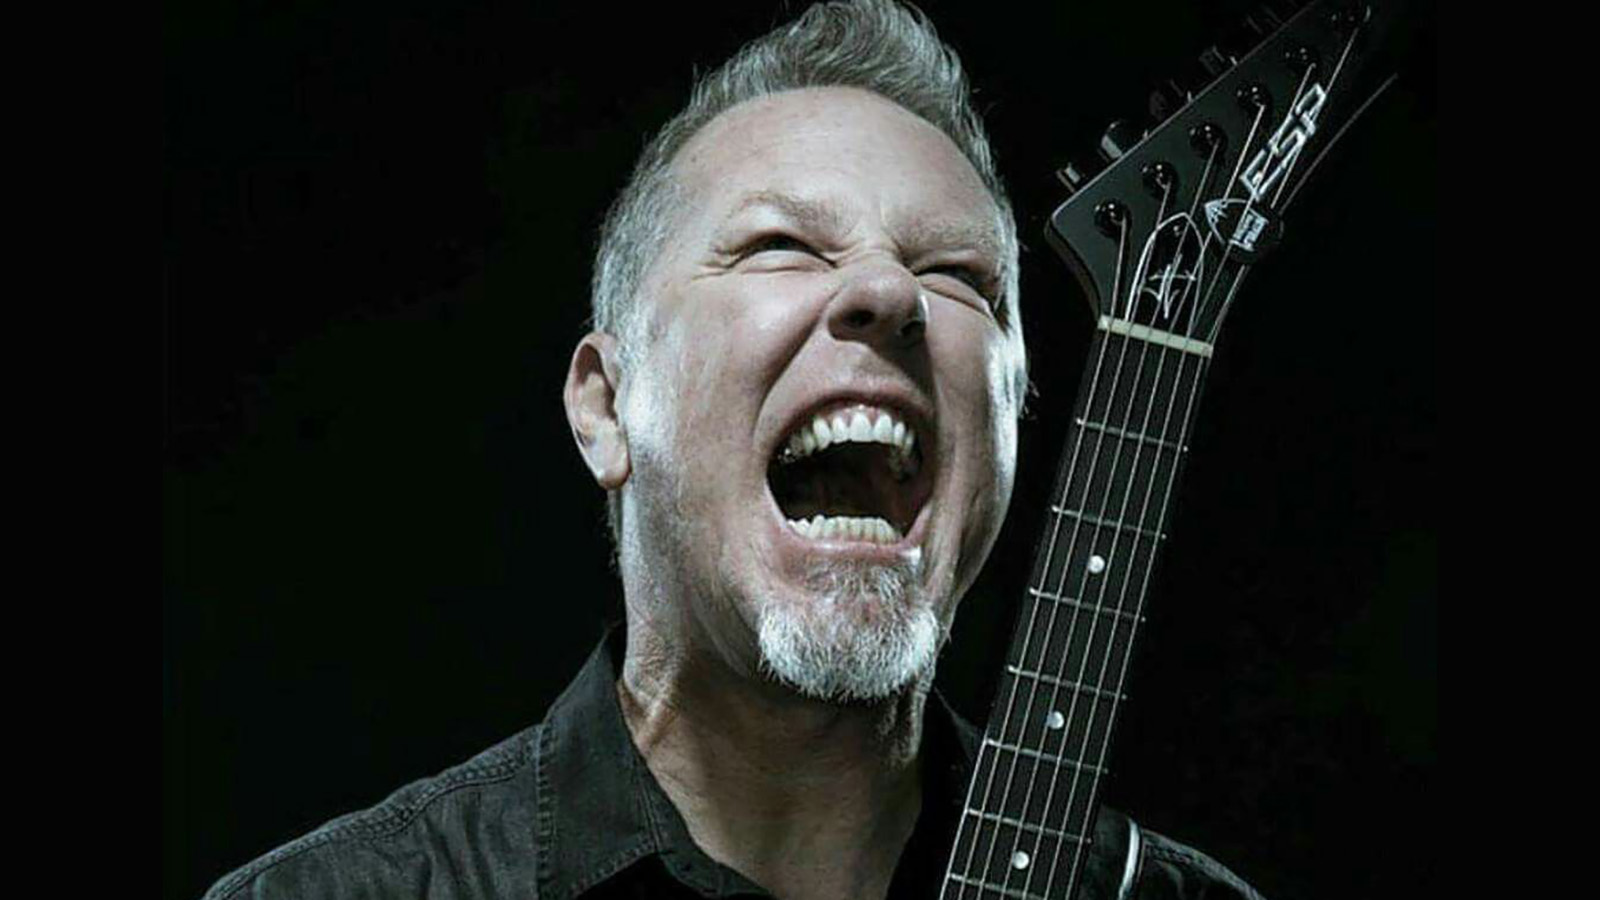 see metallica 39 s james hetfield reveal first celebrity crush fastest speed he 39 s driven revolver. Black Bedroom Furniture Sets. Home Design Ideas